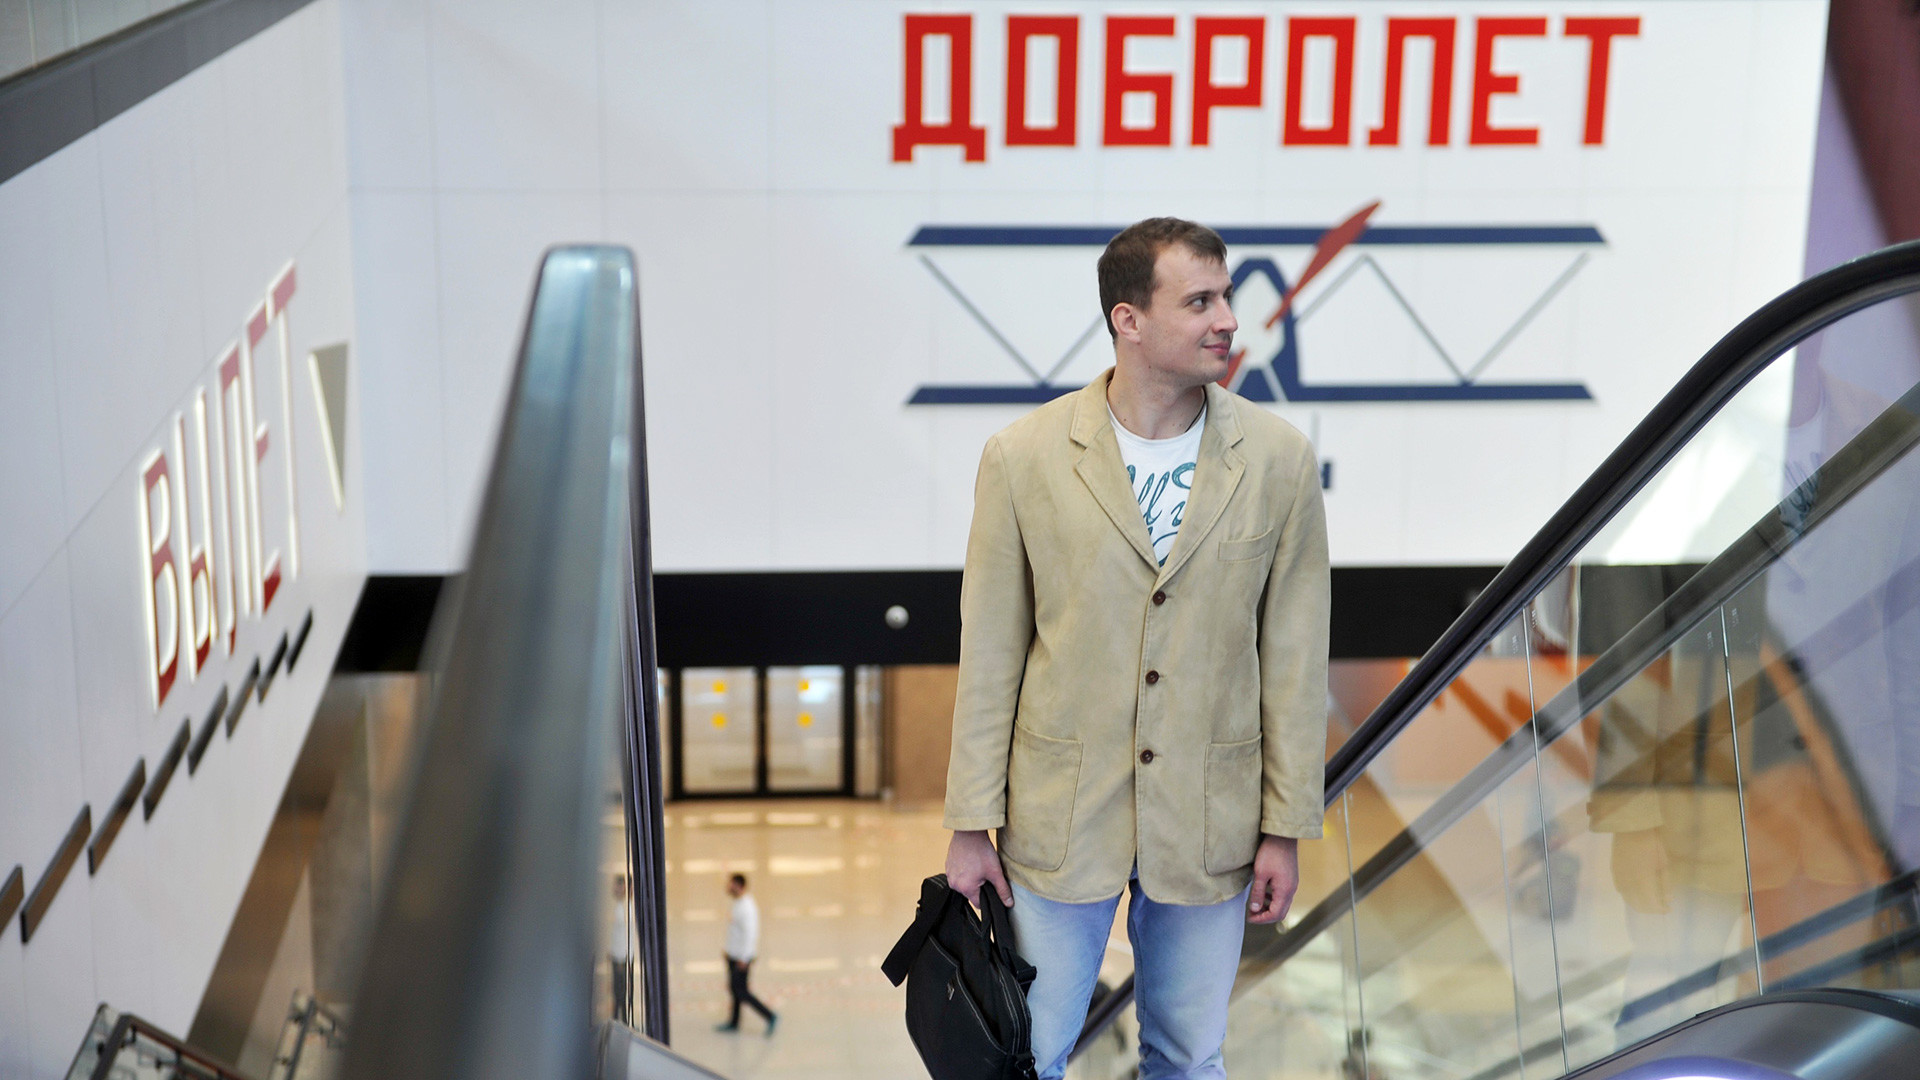 Sheremetyevo will not have time to build the third lane for the 2018 World Cup